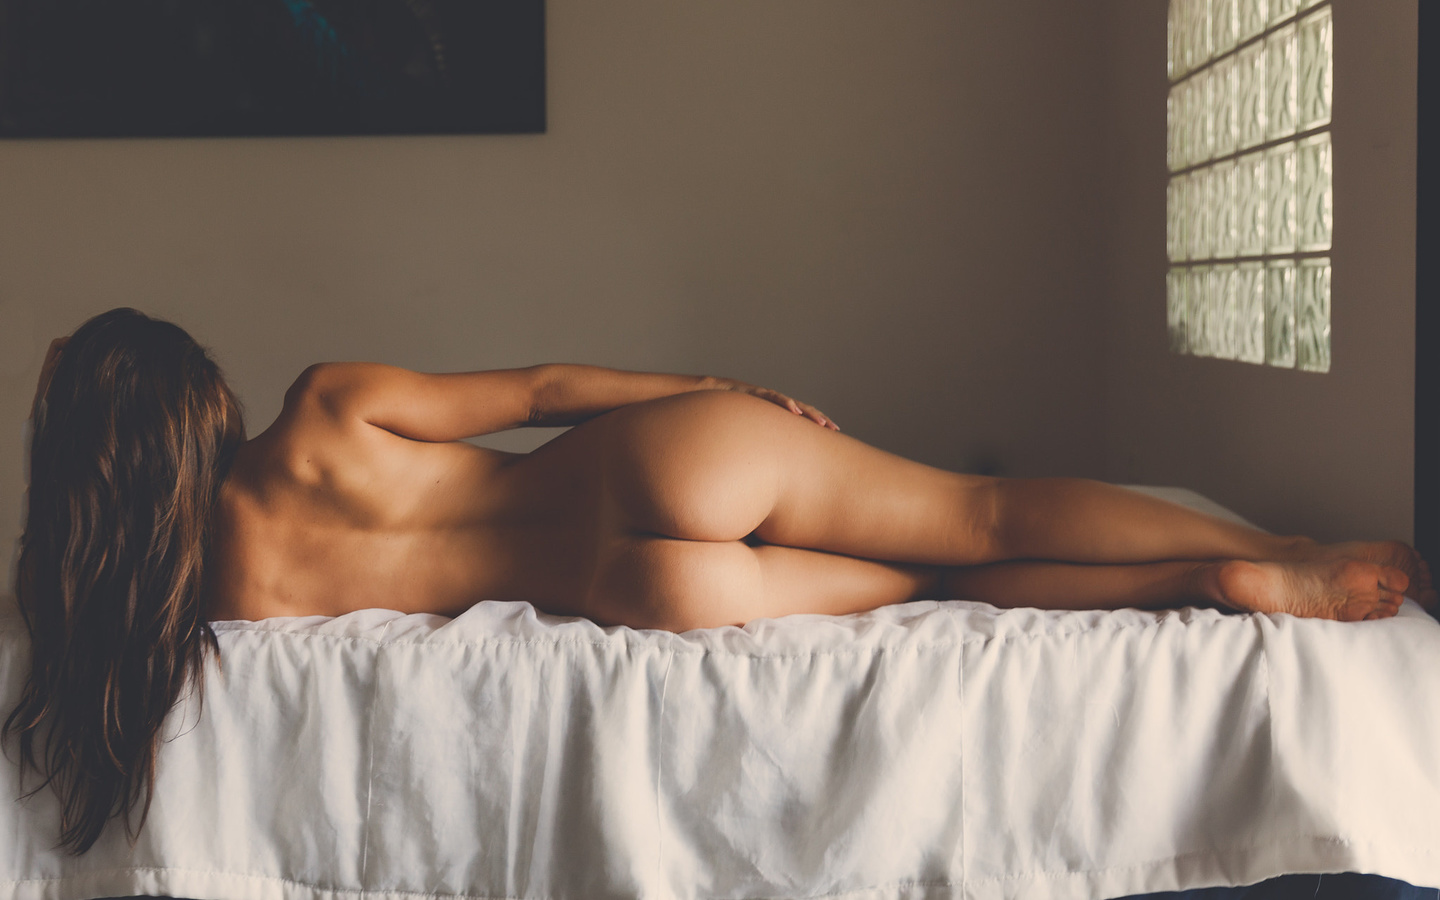 amateur-post-nude-womens-backs-daily